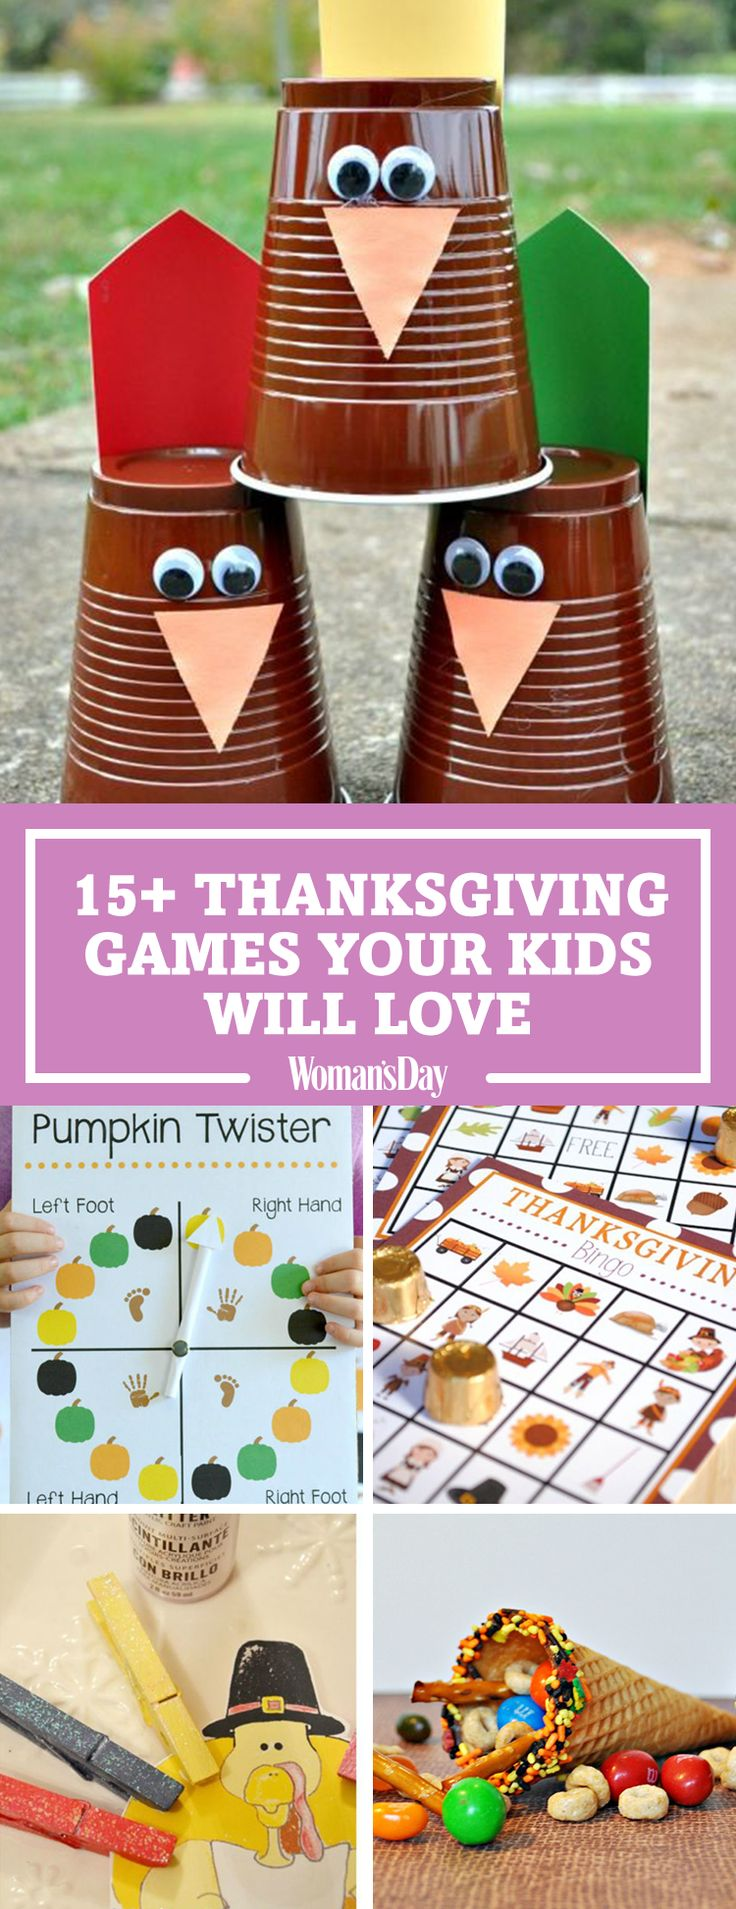 Save these great Thanksgiving games your kids will love for later! Don't forget to follow Woman's Day on Pinterest for more great ideas for kids.